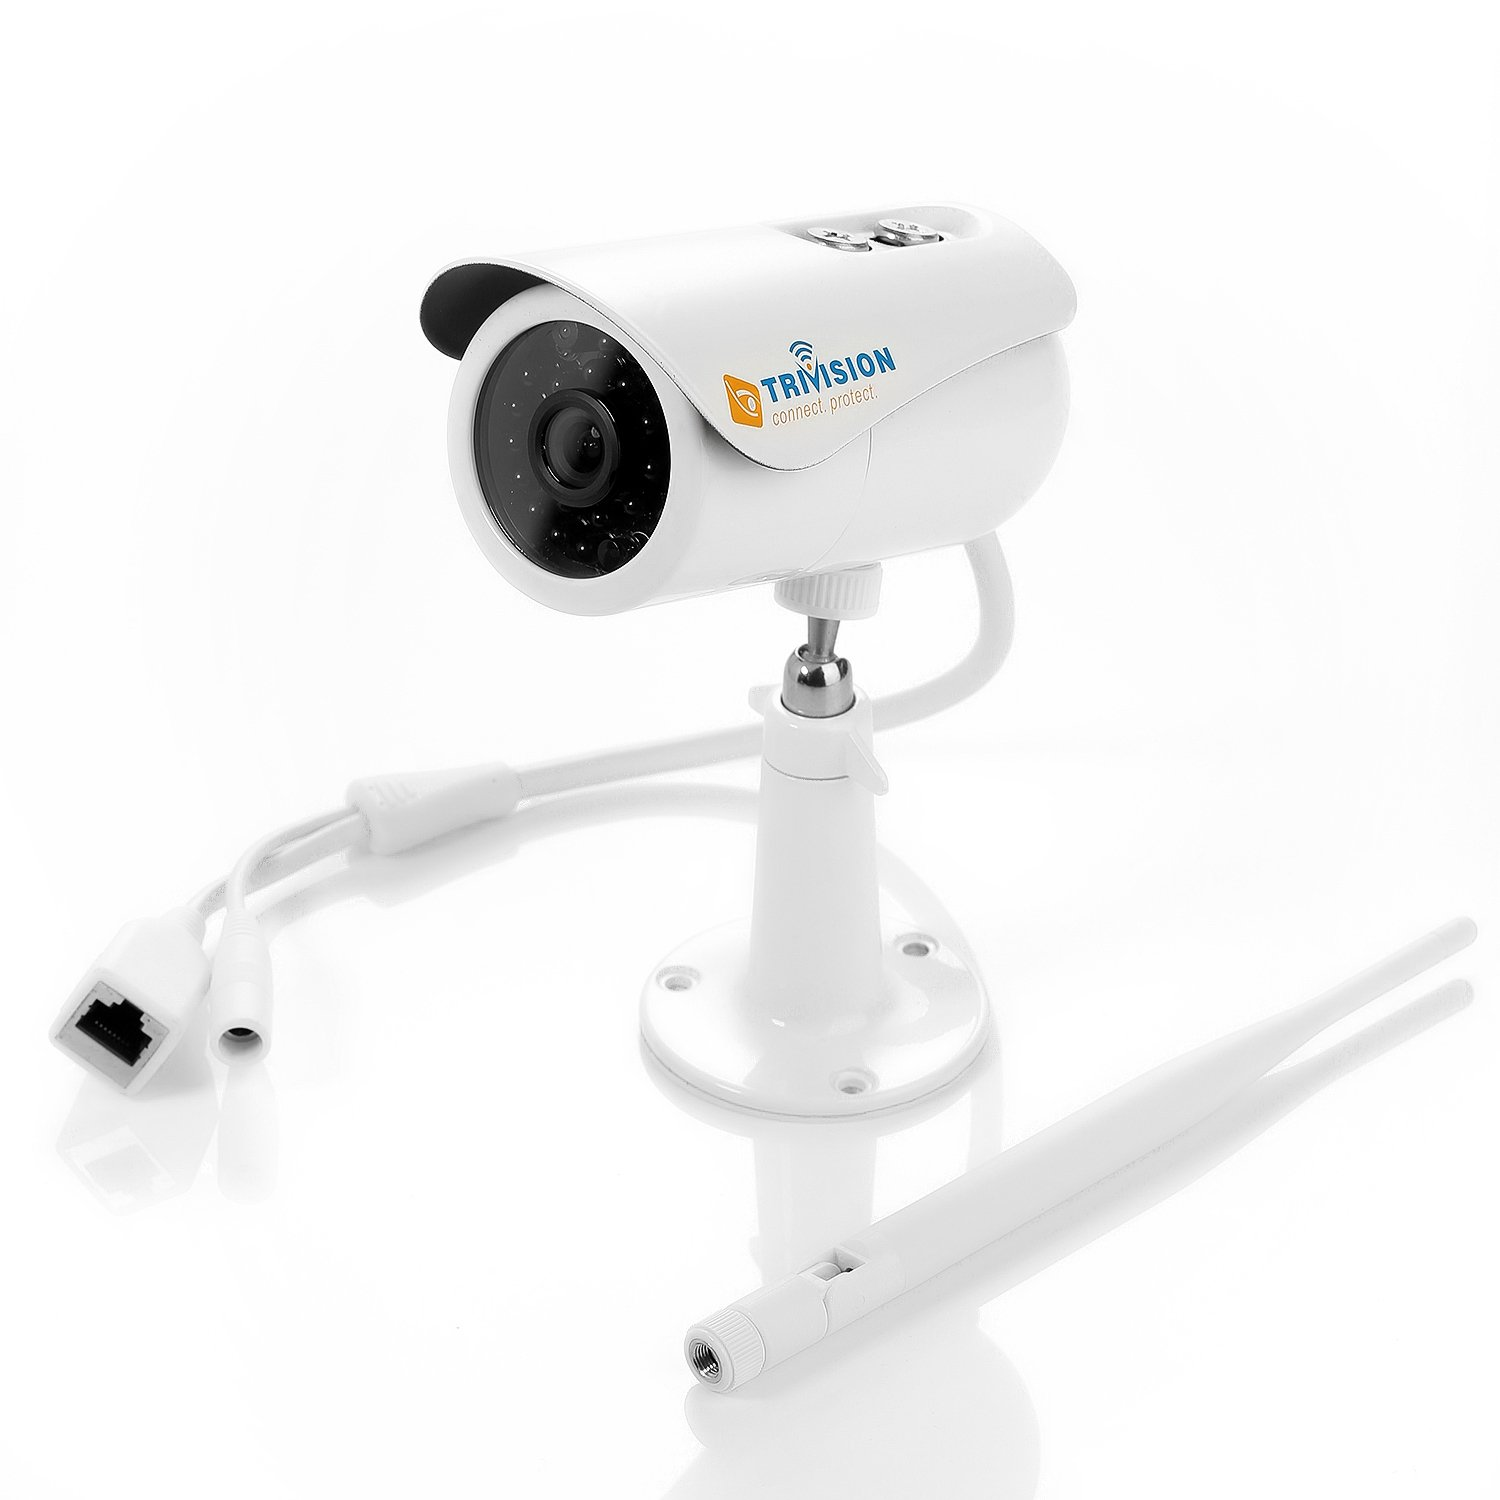 Superior Low Light Performance TriVision HD 1080P Outdoor Surveillance Camera Wireless Wi-Fi Ultra-Wide View Angle Lens Sensitive Microphone and Motion Sensor Range up to 300 Feet NC-350W HD 1080P